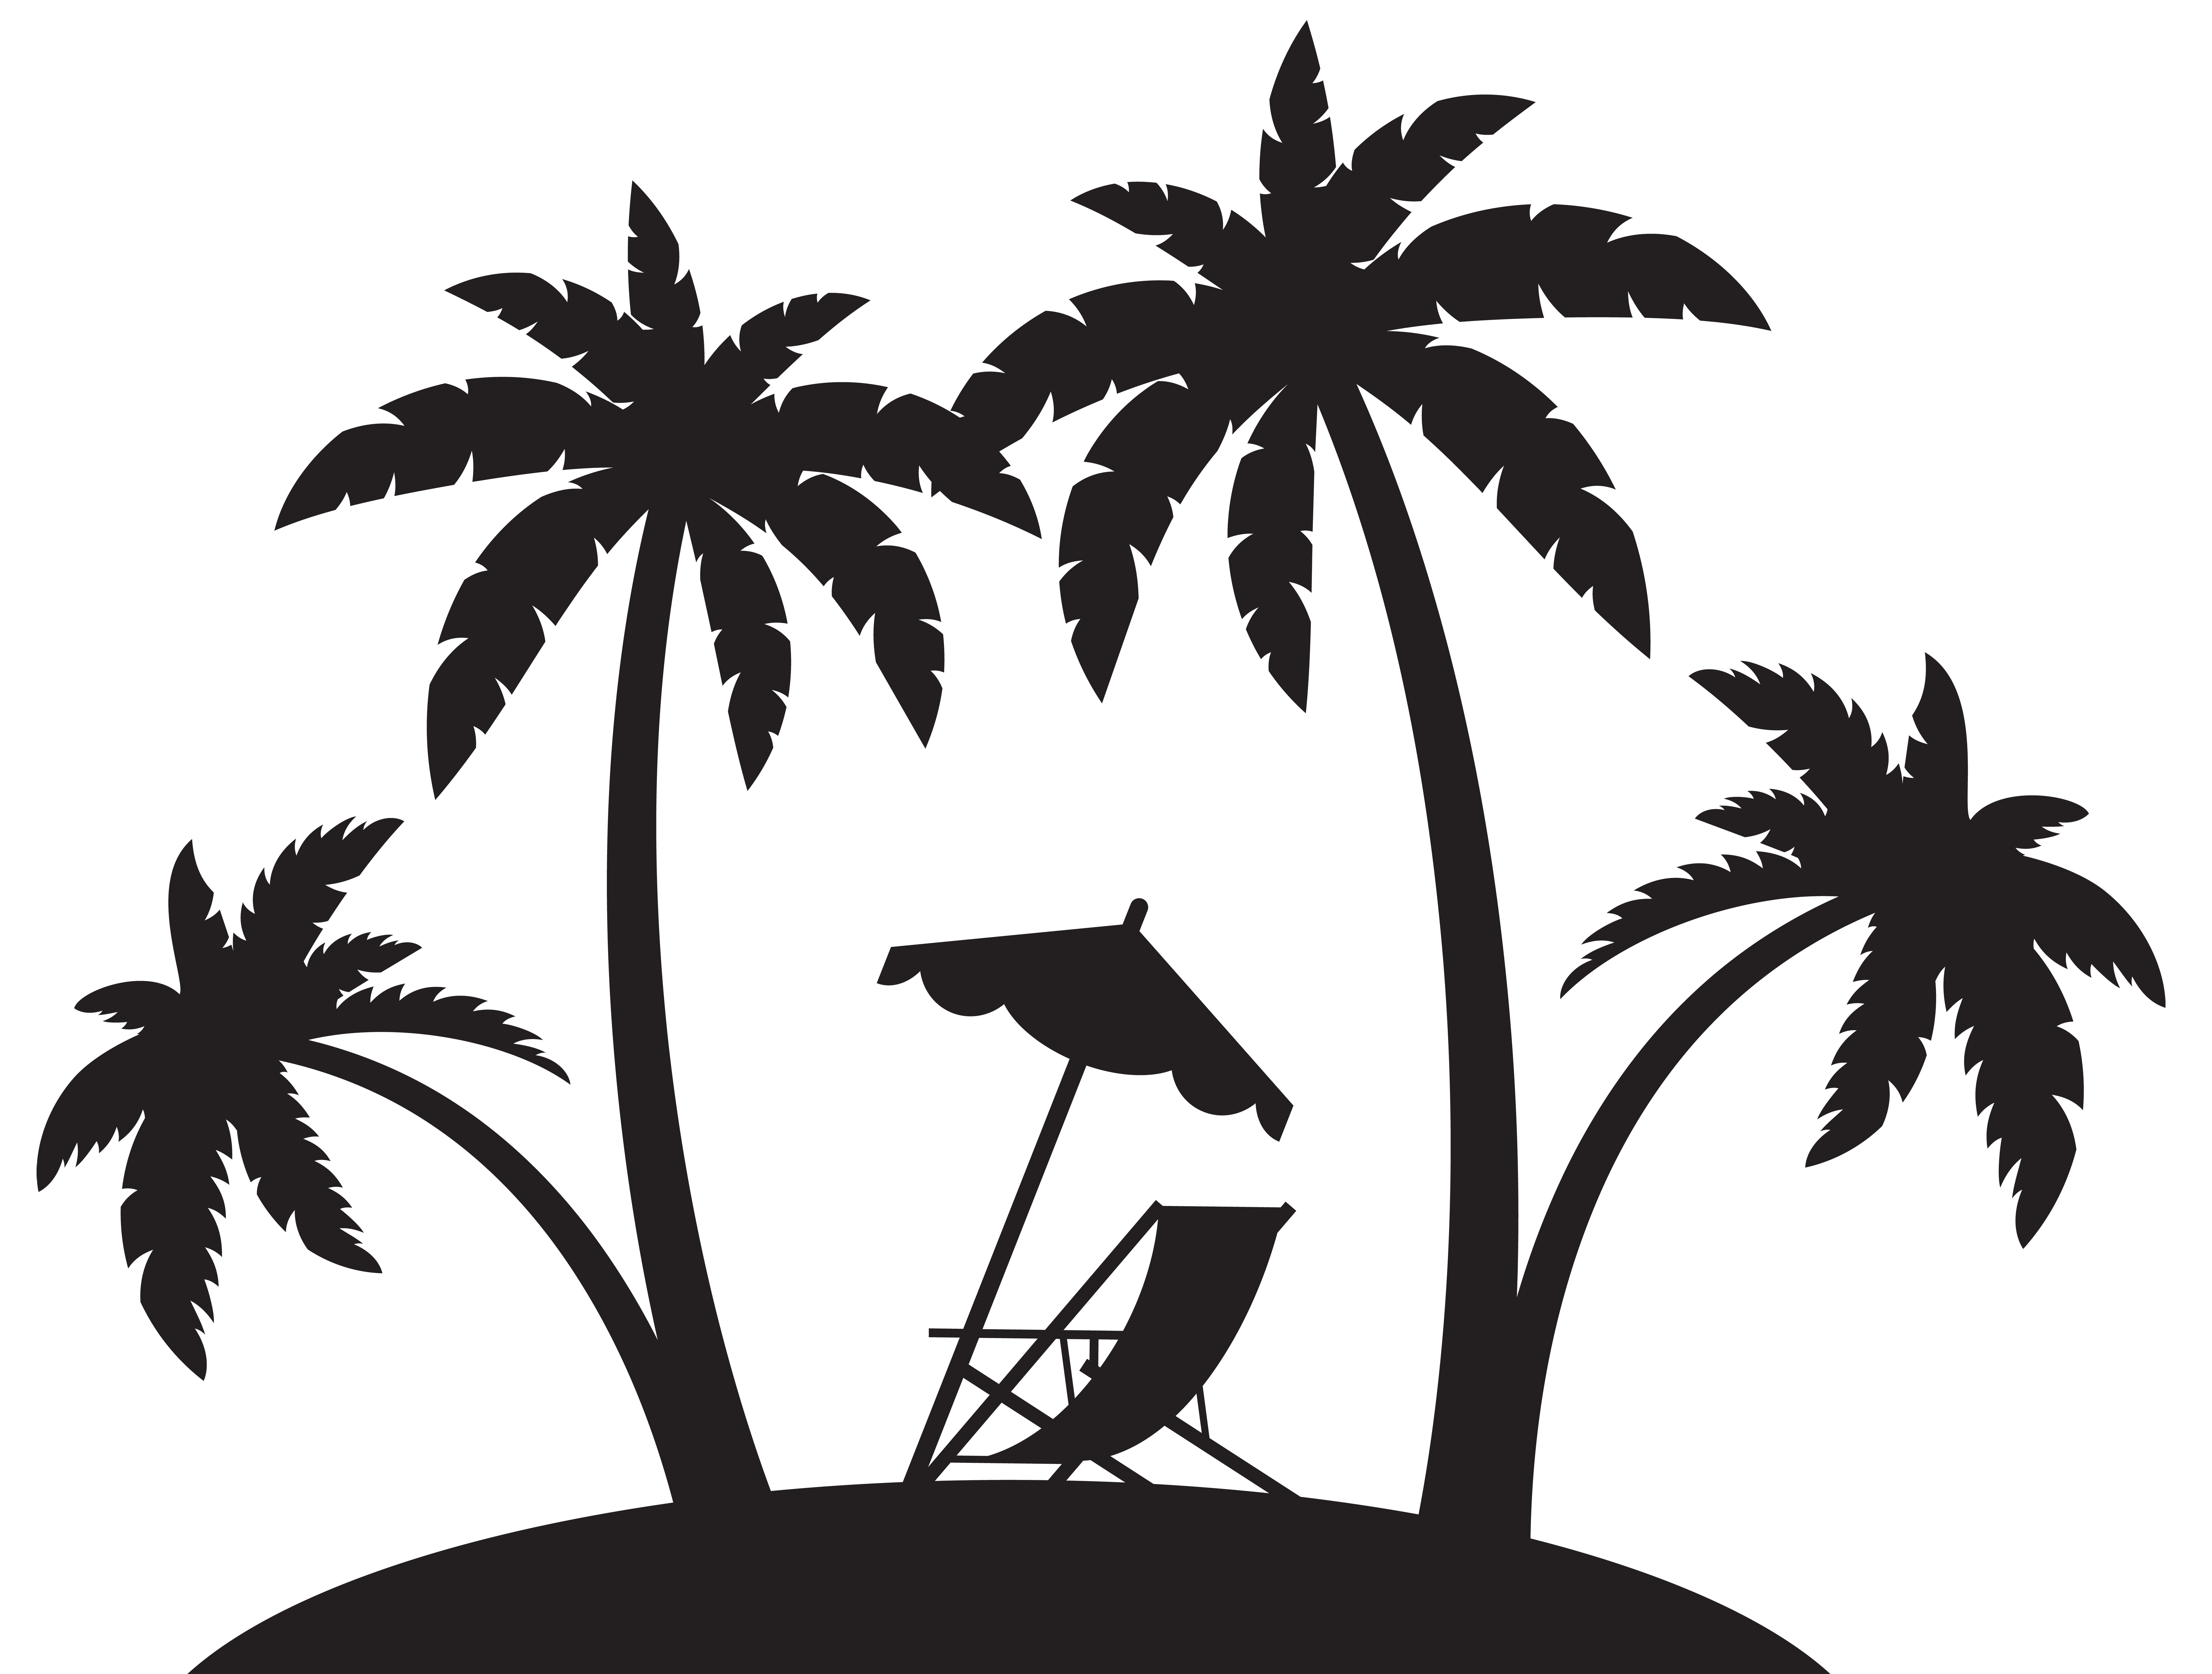 8000x6056 Palms And Beach Chair Silhouette Png Clip Artu200b Gallery